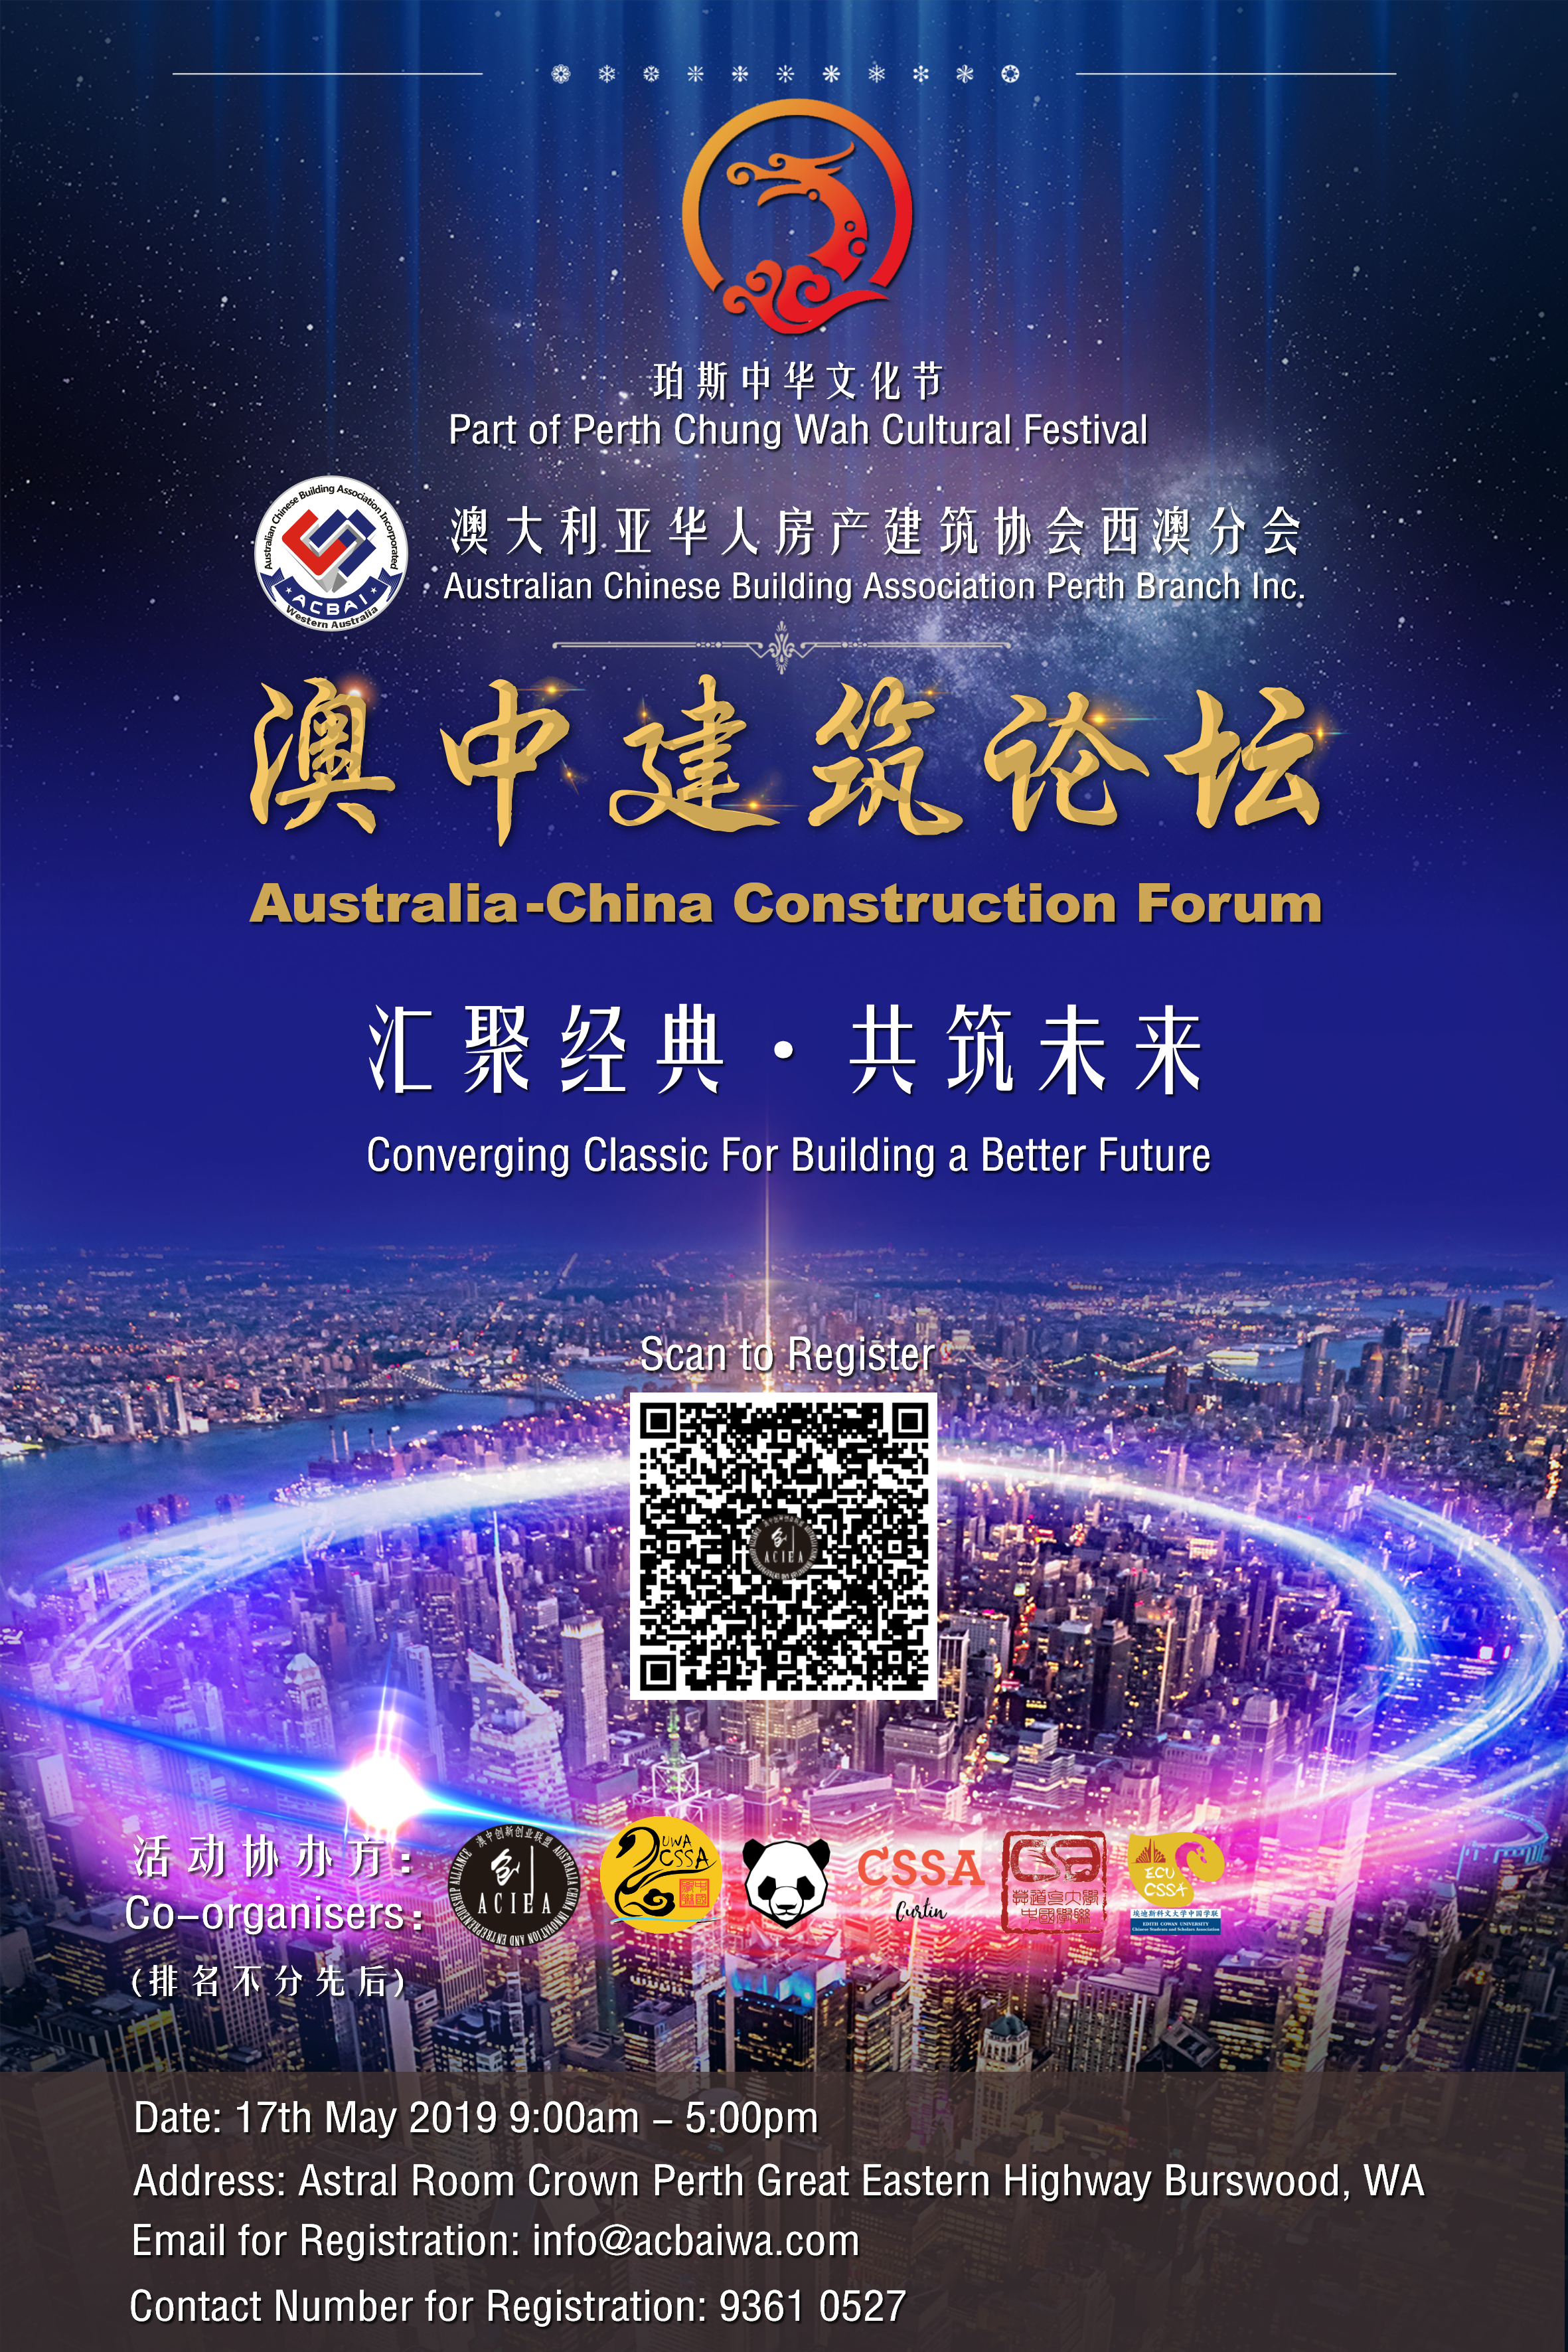 "Australia-china construction forum - Astral Ballrooom, Crown Perth9am - 5pm Friday 17 May 2019FREE forum, featuring local and international speakers on a range of topics including Chinese & Australian building styles and incorporation of '""fengshui"" principles in architectural design.Register your attendance with Australian Chinese Building Association Perth on 9361 0527 or info@acbaiwa.comFor more information visit https://www.acbaiwa.com/This is a free event - registrations are essential and strictly limited"